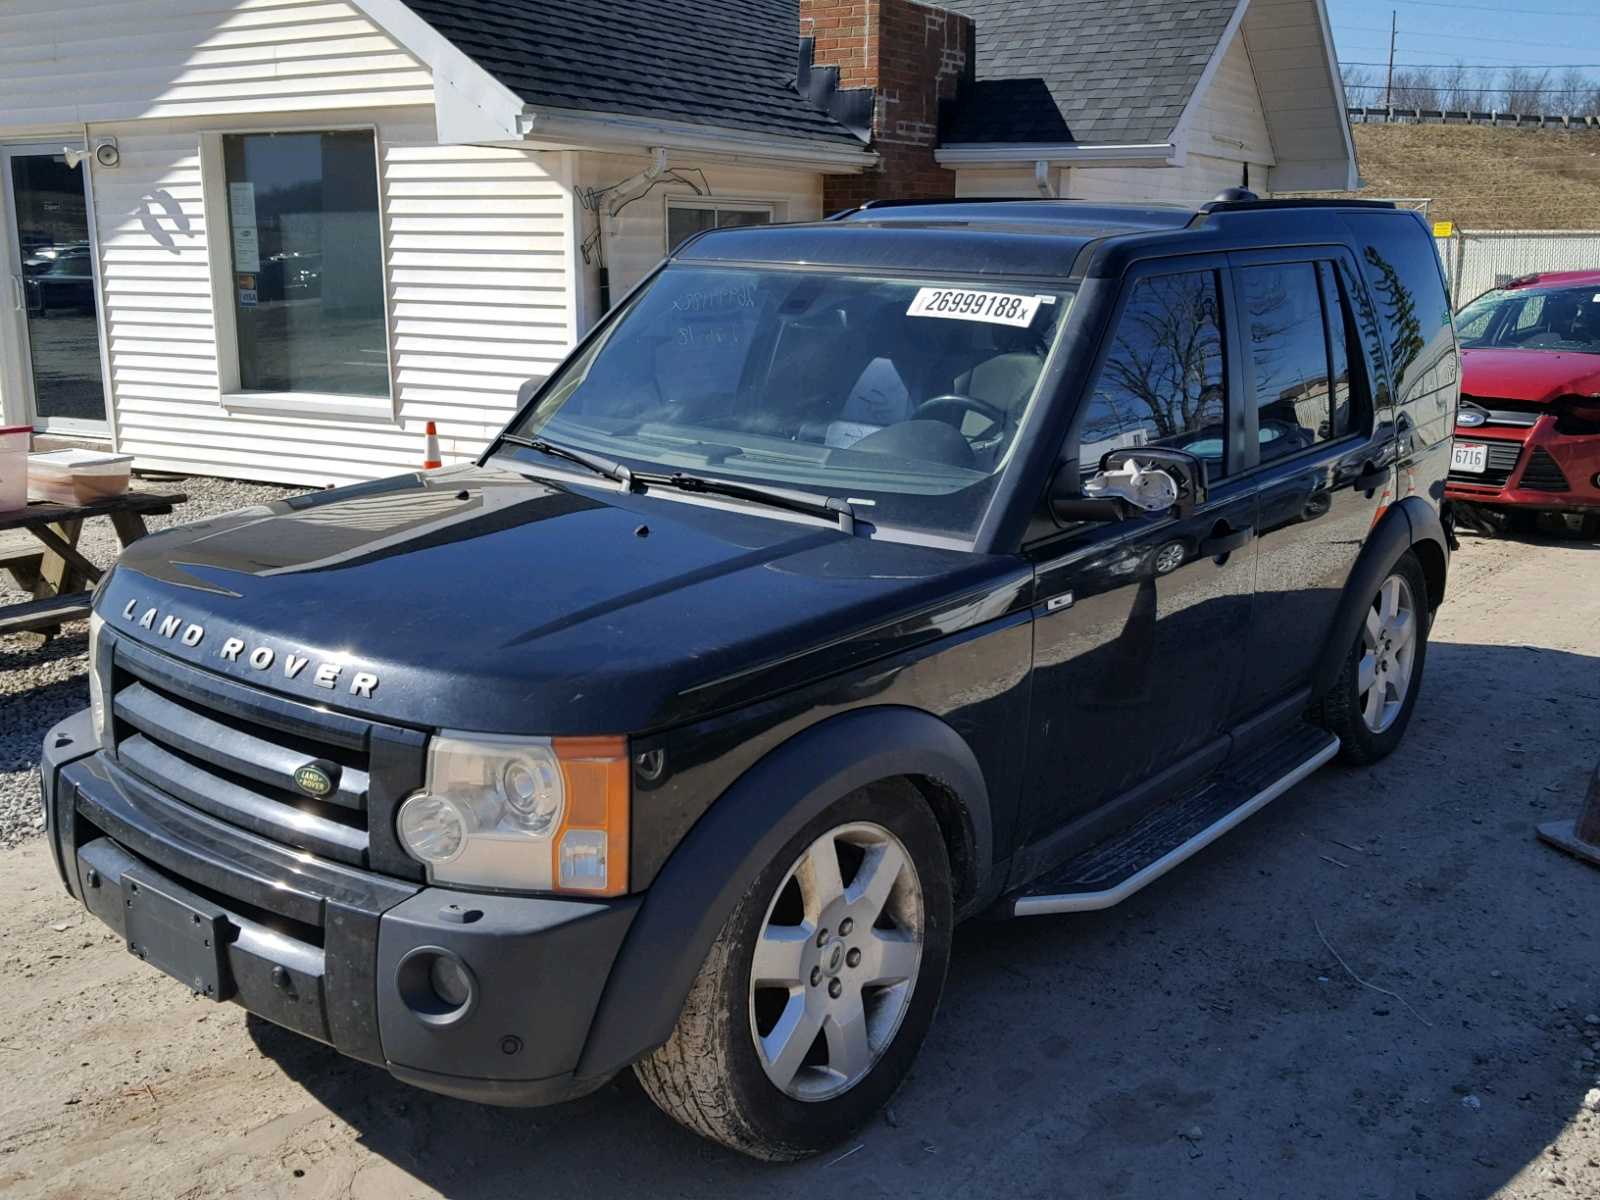 auctions ended for land auction rover certificate of hartford online hse sale landrover vin title copart auto en carfinder ct on lot